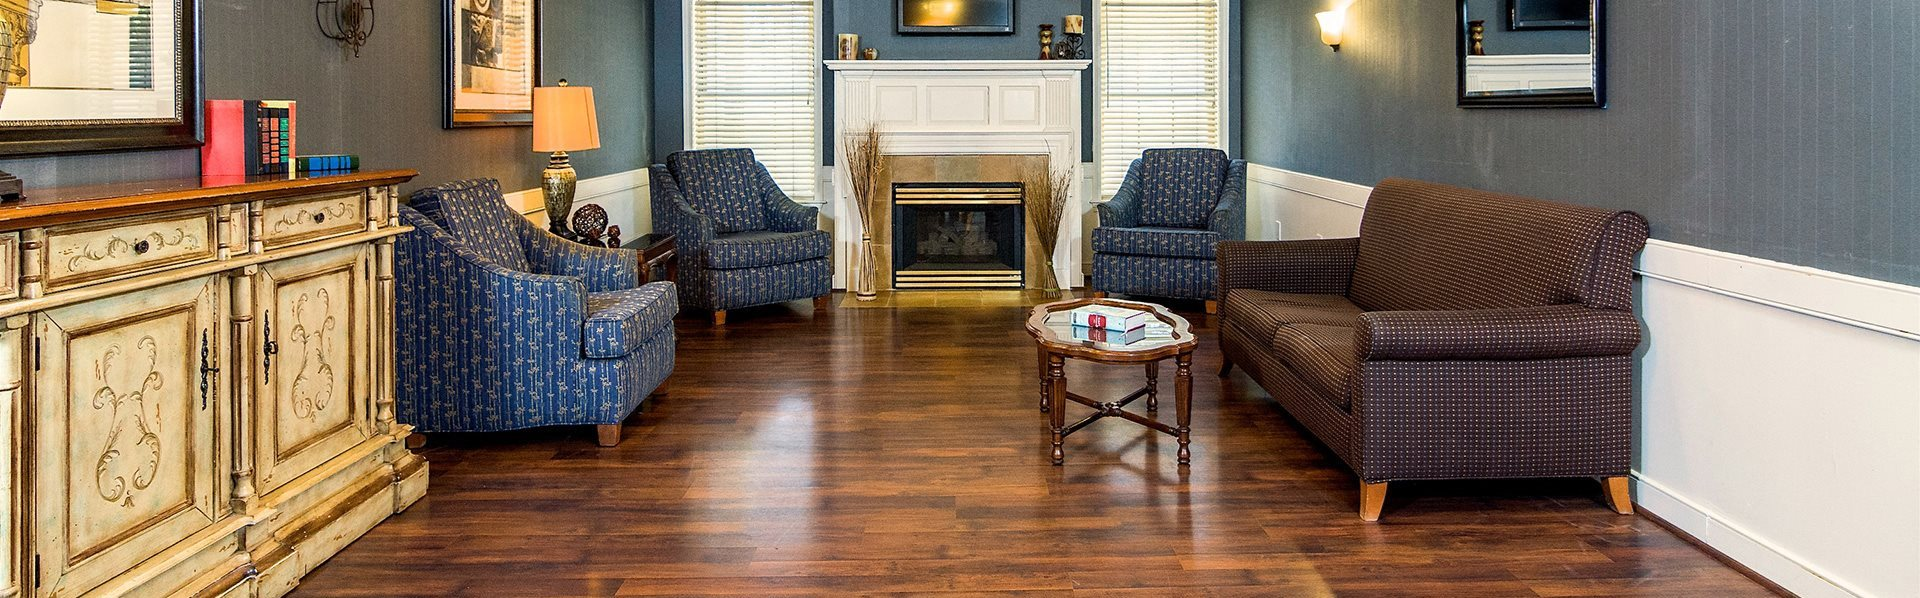 Lively Living Rooms at Pacifica Senior Living Victoria Court, Rhode Island